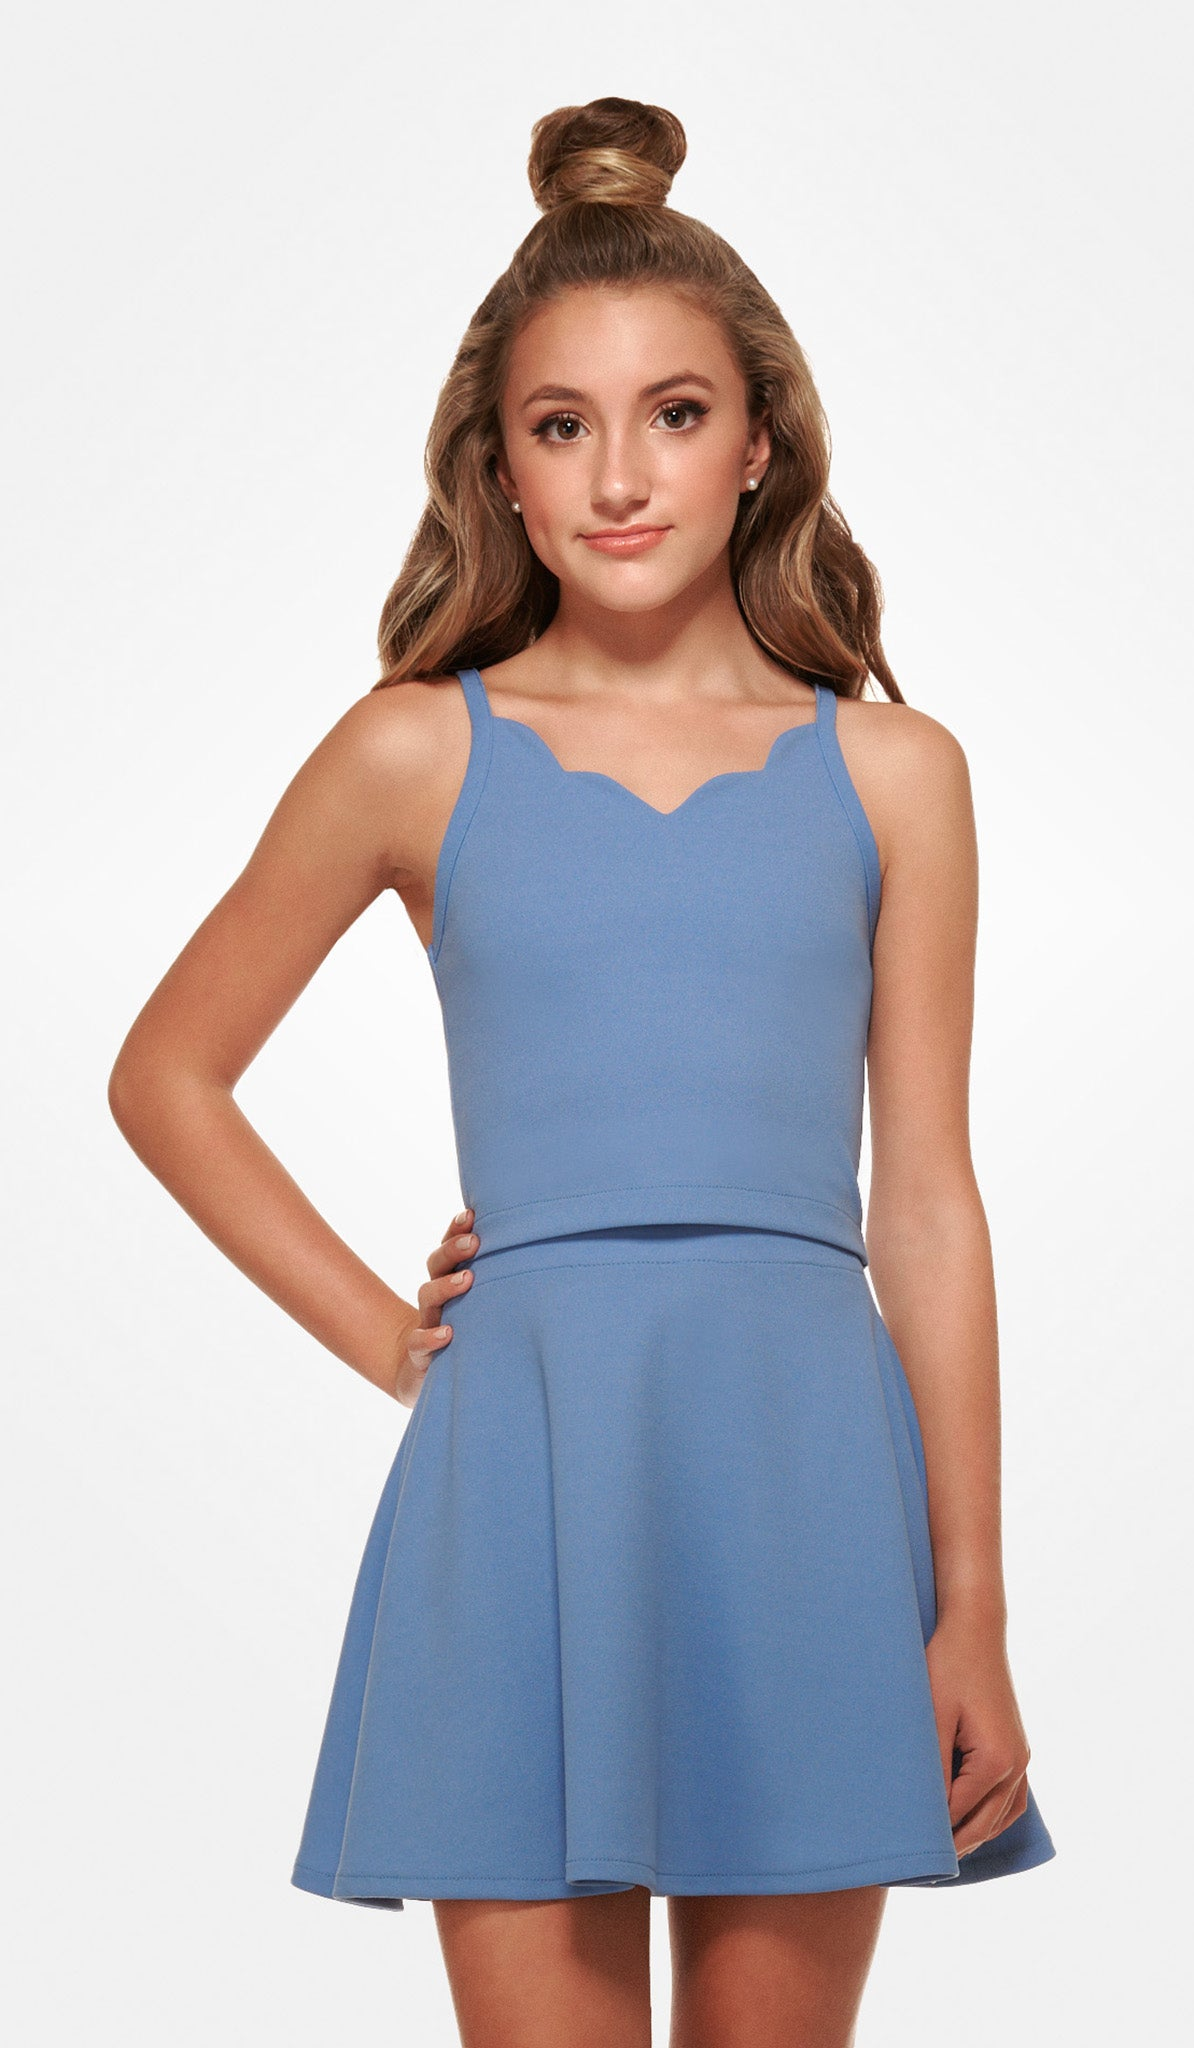 THE COCO SET - Sallymiller.com - [variant title] - | Event & Party Dresses for Tween Girls & Juniors | Weddings Dresses, Bat Mitzvah Dresses, Sweet Sixteen Dresses, Graduation Dresses, Birthday Party Dresses, Bar Mitzvah Dresses, Cotillion Dresses